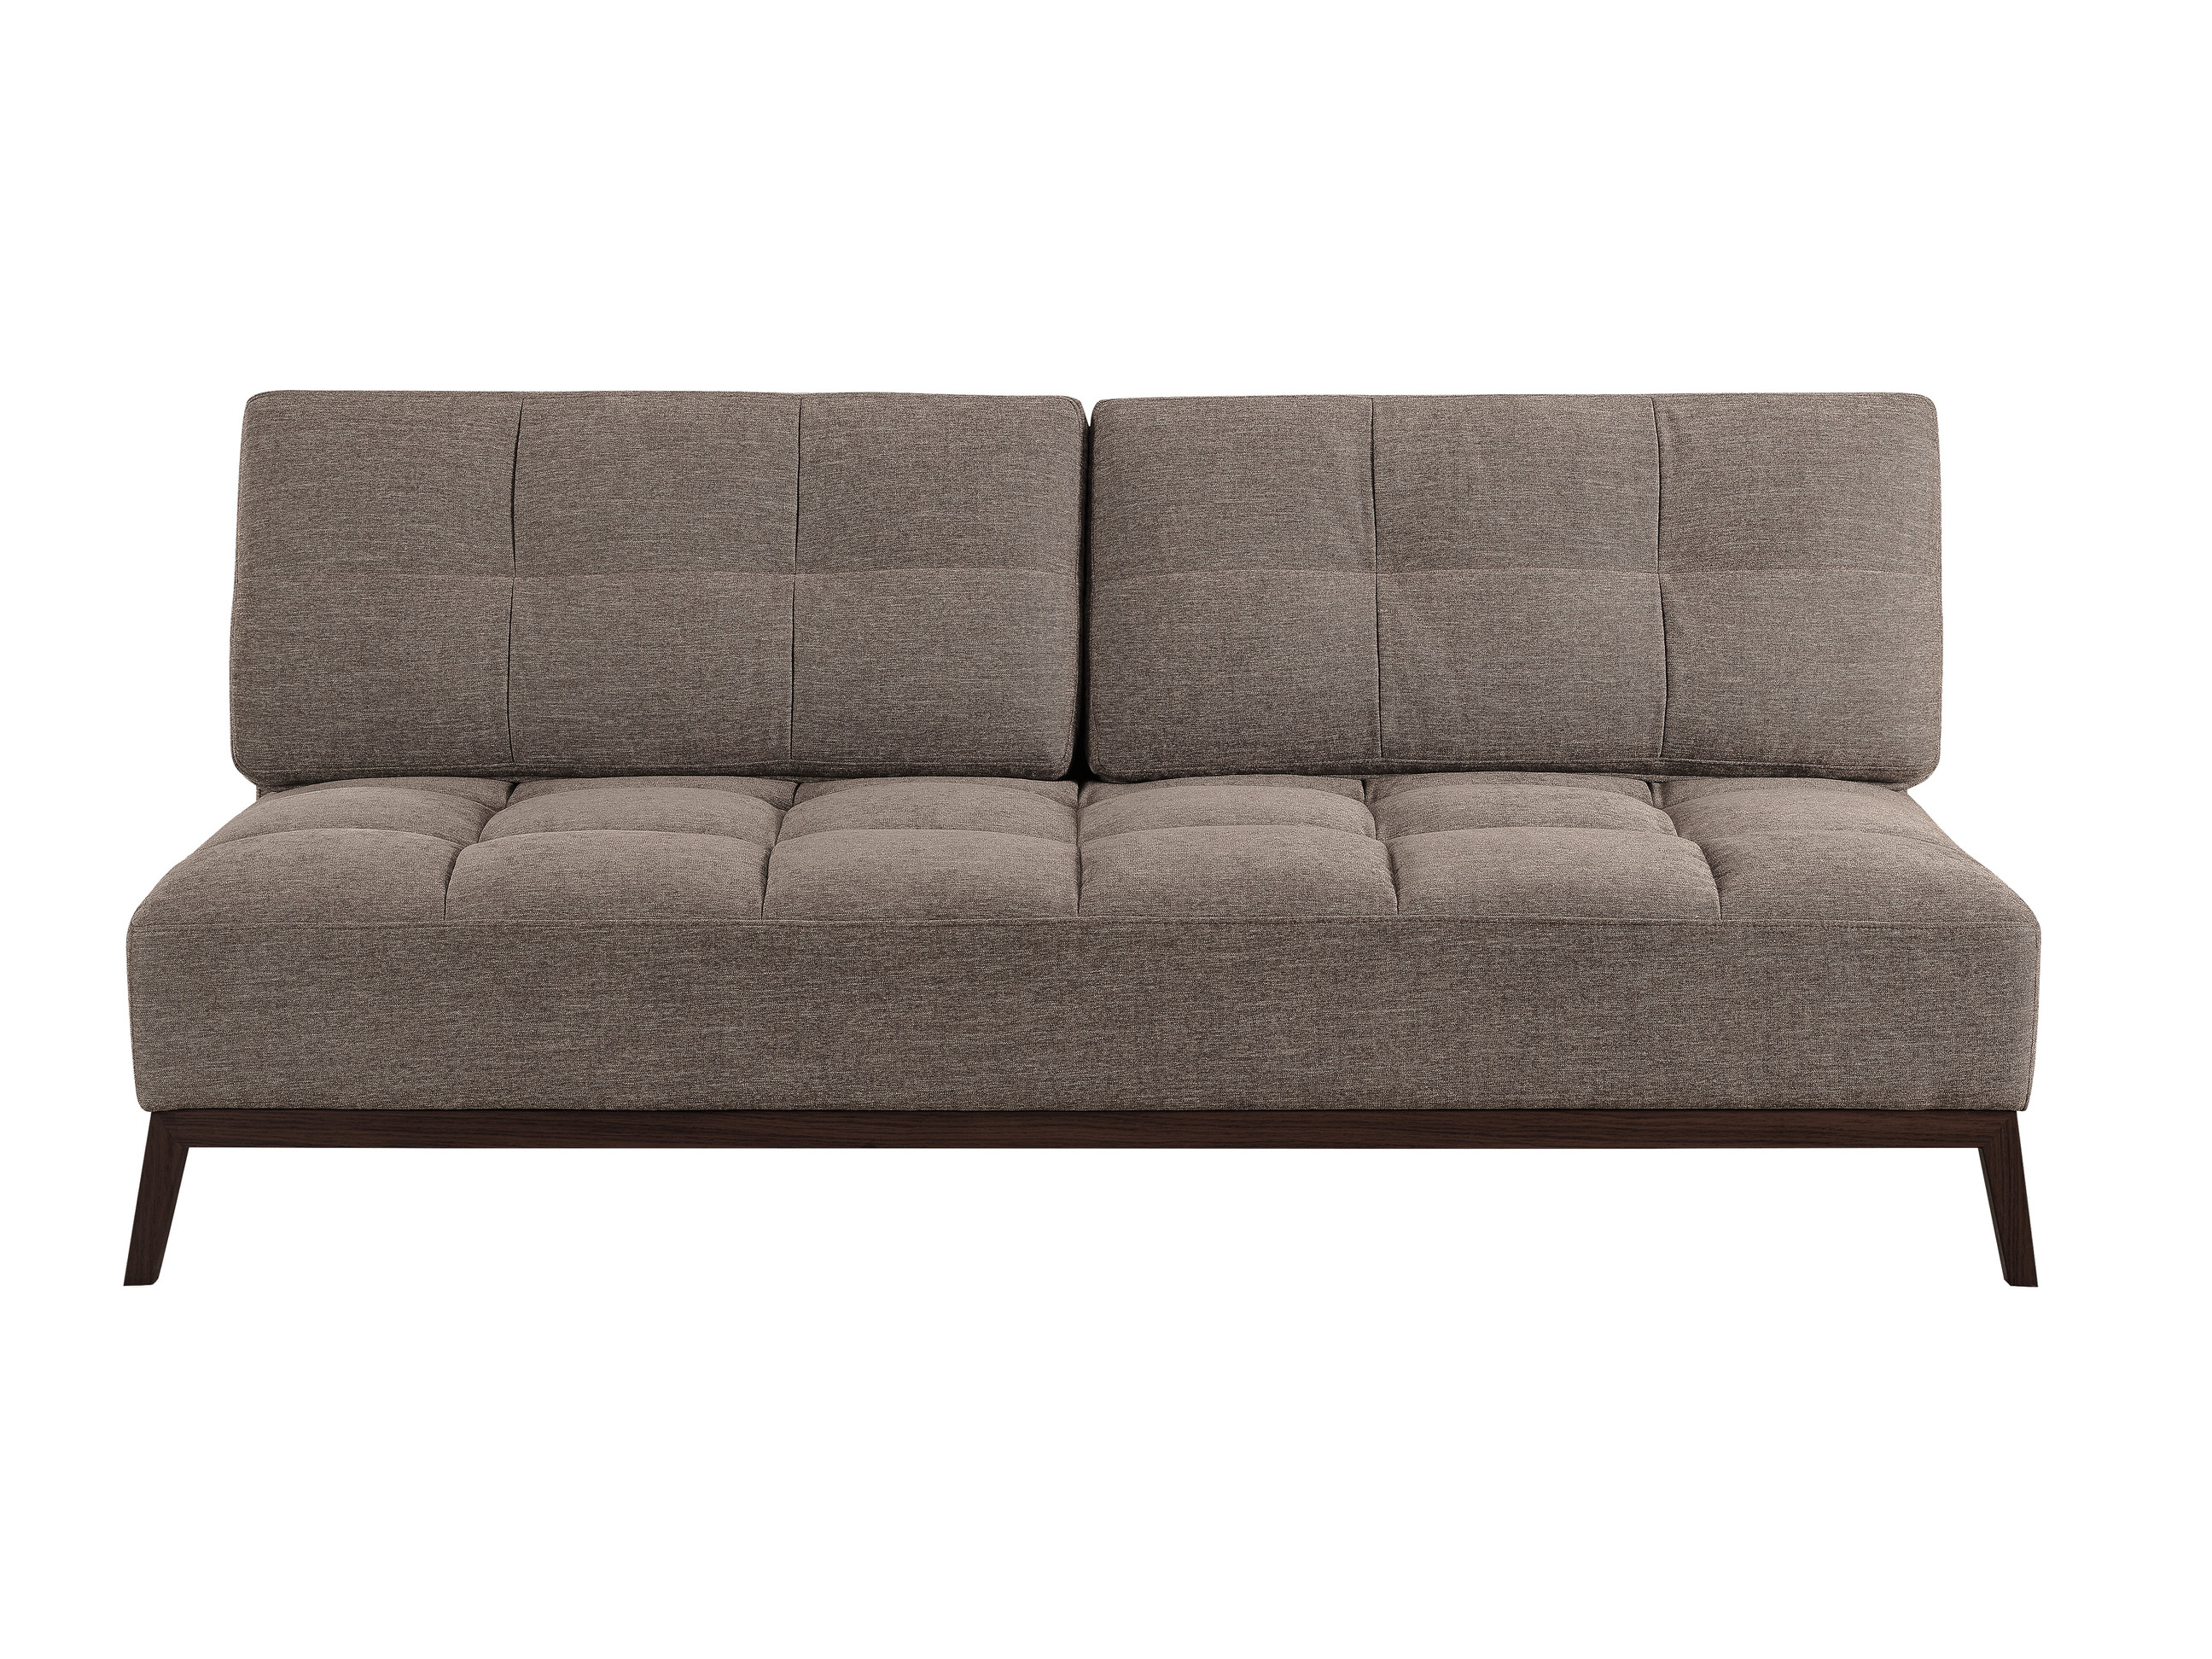 Santana Convertible Sofa Bed Brown by Lifestyle Solutions